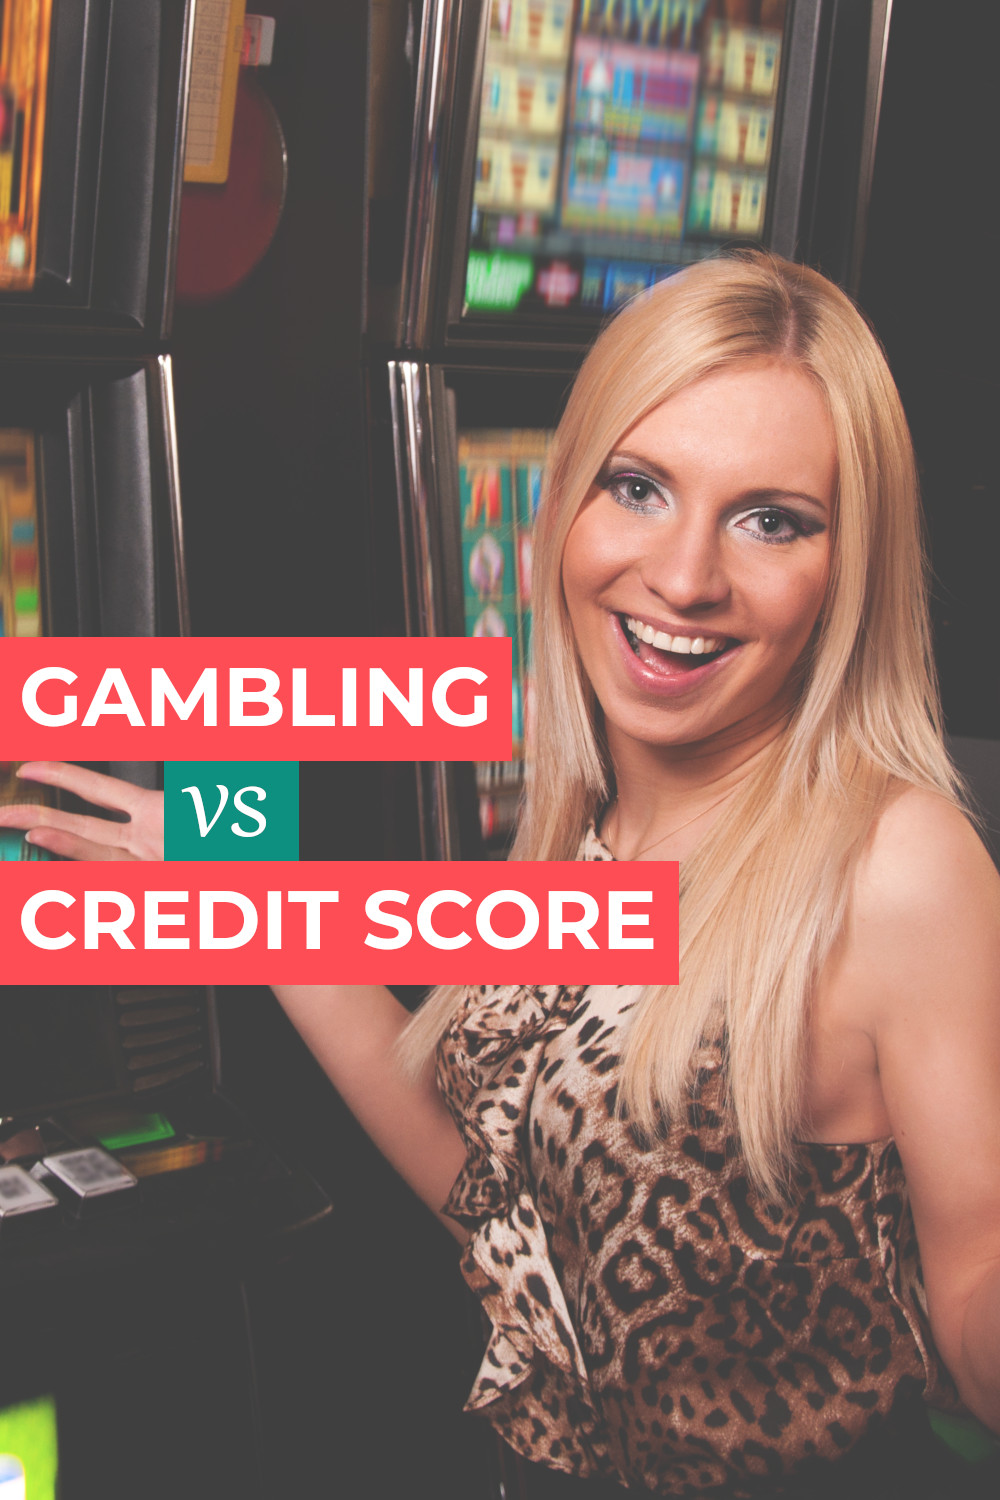 Does gambling affect your credit score?